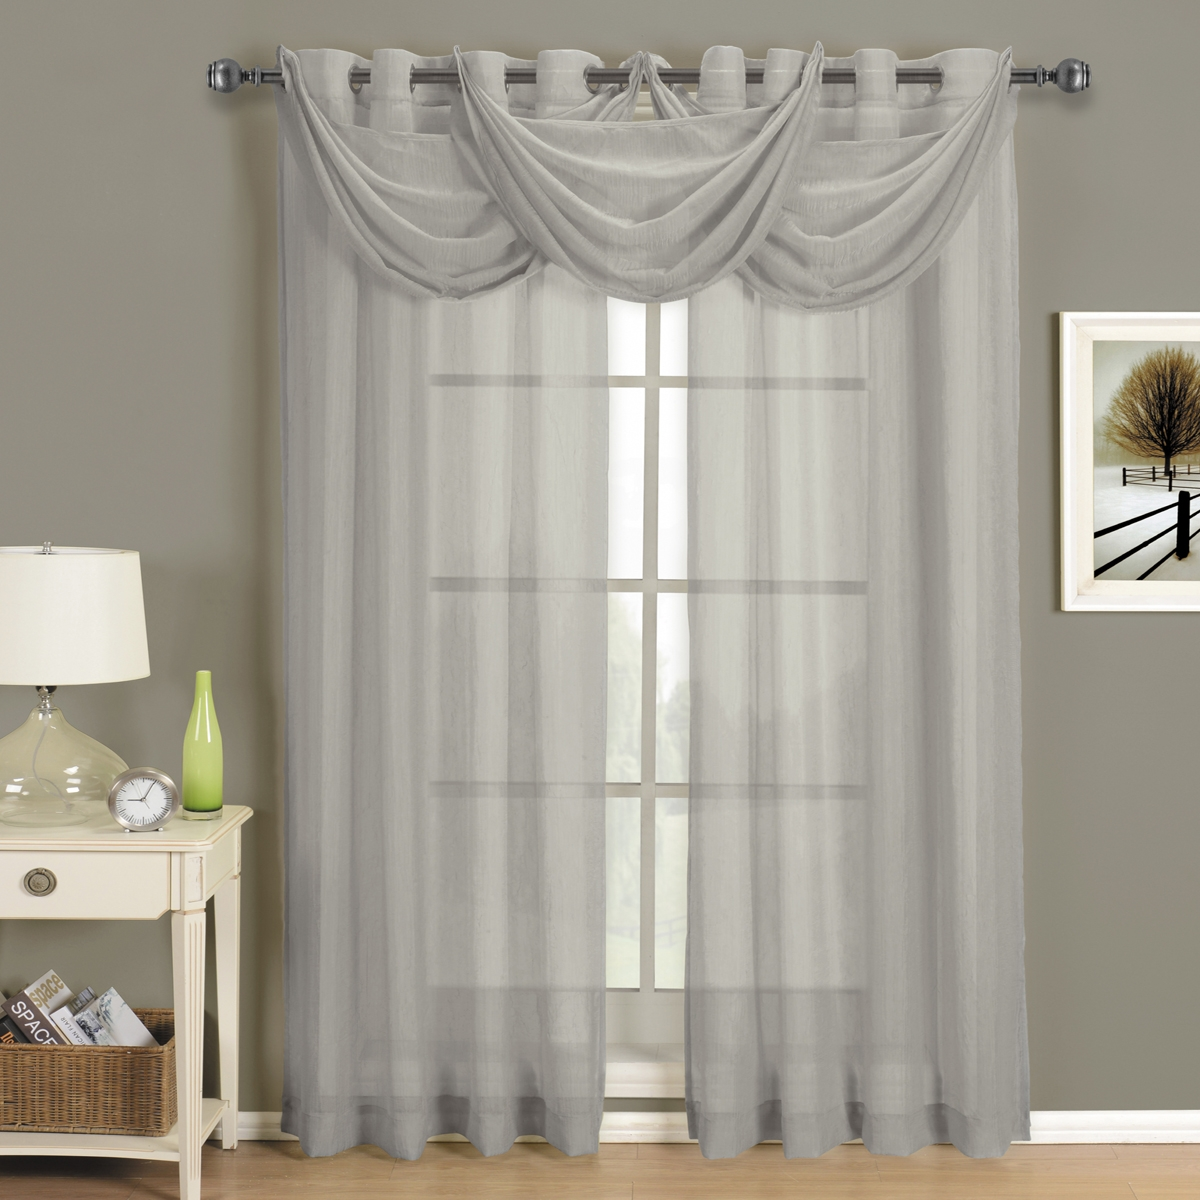 Abri Grommet Crushed Sheer Curtain Panel Ebay Inside Sheer White Curtain Panels (Image 1 of 25)